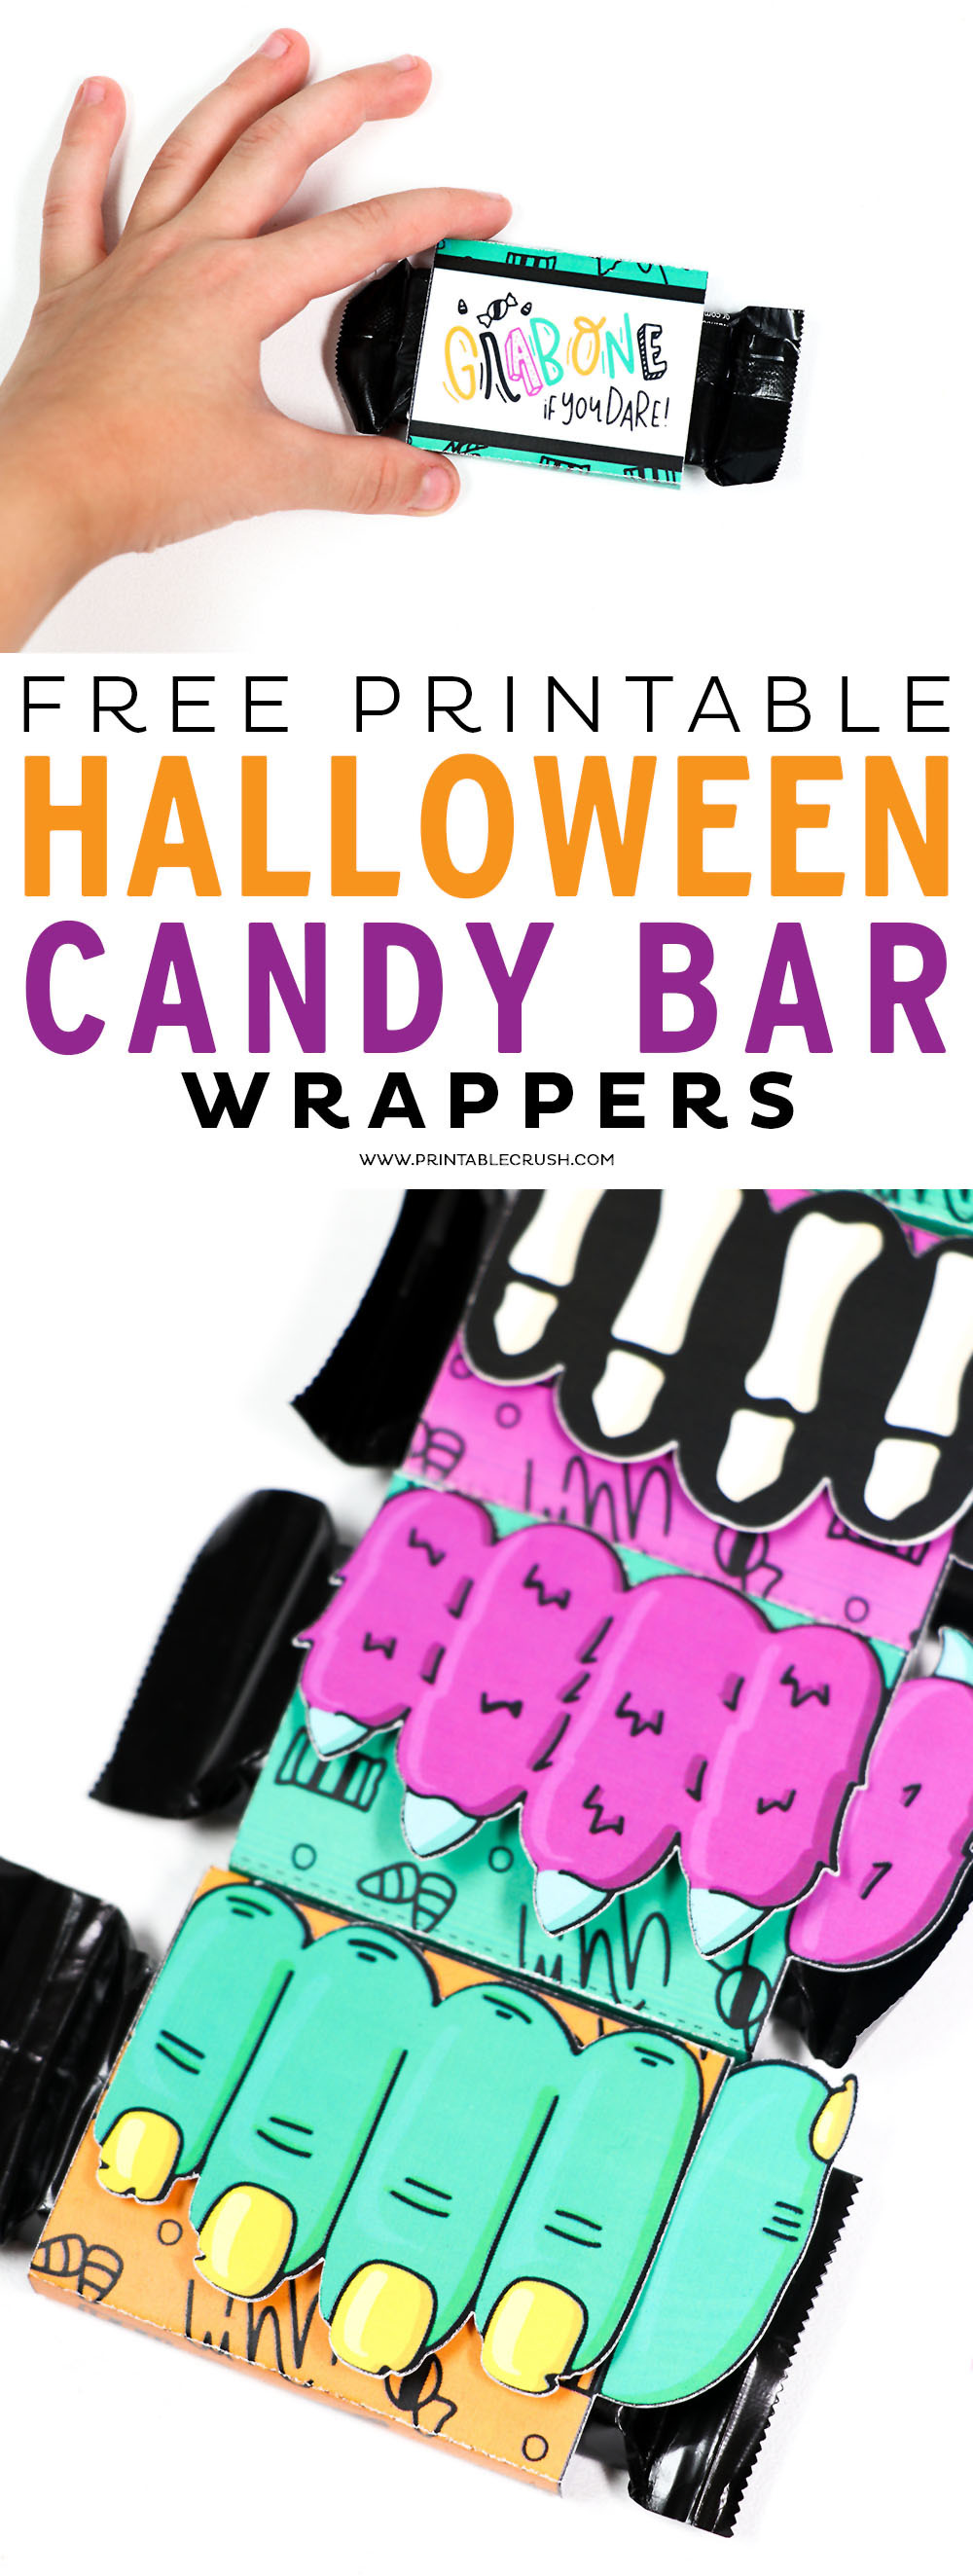 Make these Printable Halloween Candy Bar Wrappers for your next Halloween Party or give them out to trick or treaters! #cricutmade #printandcut #halloween #halloweenprintables #halloweenpartyfavors via @printablecrush